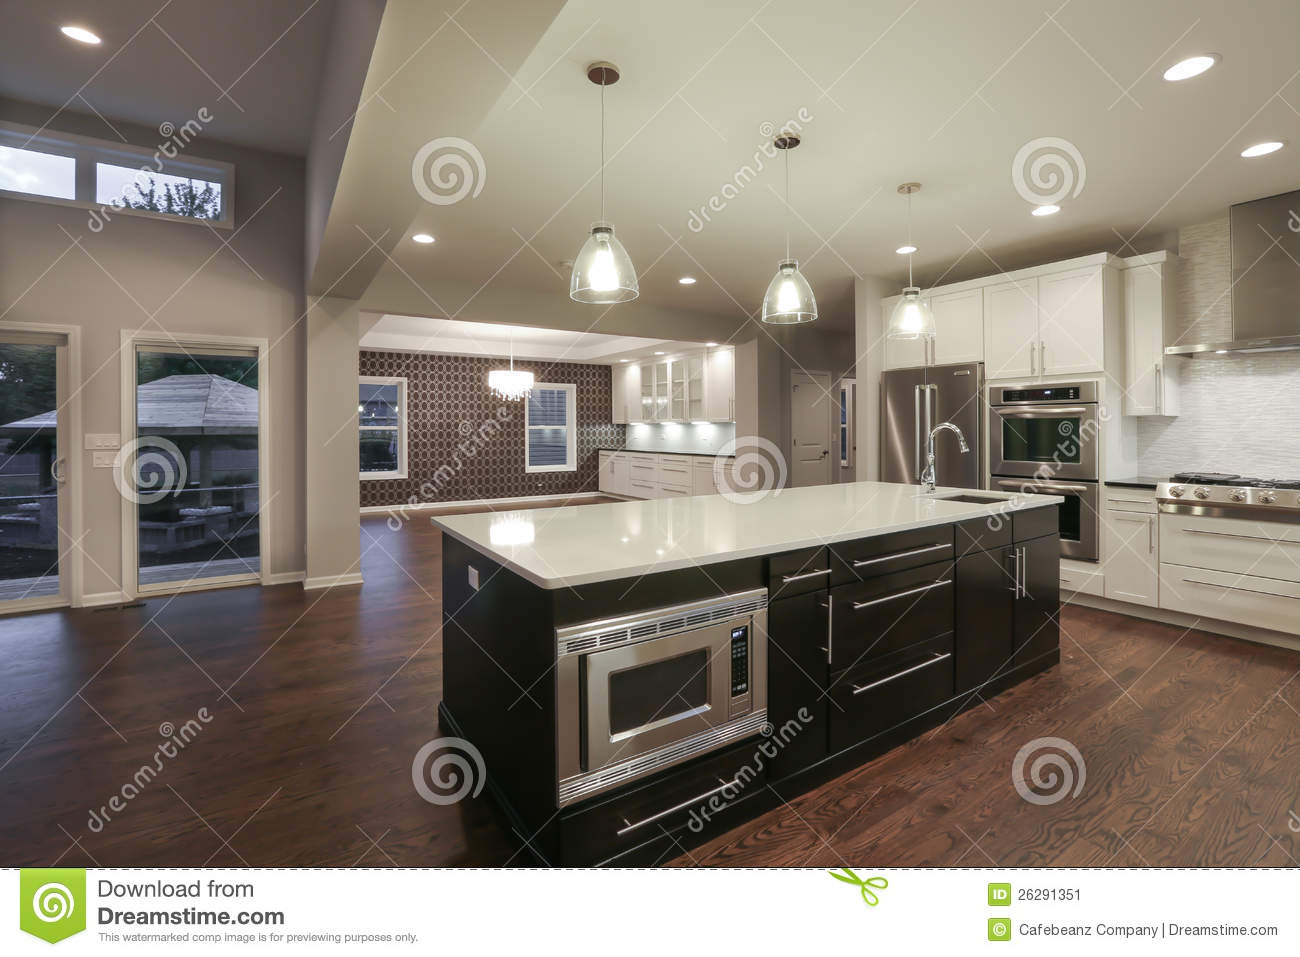 New Home Interior Stock Image - Image: 26291351